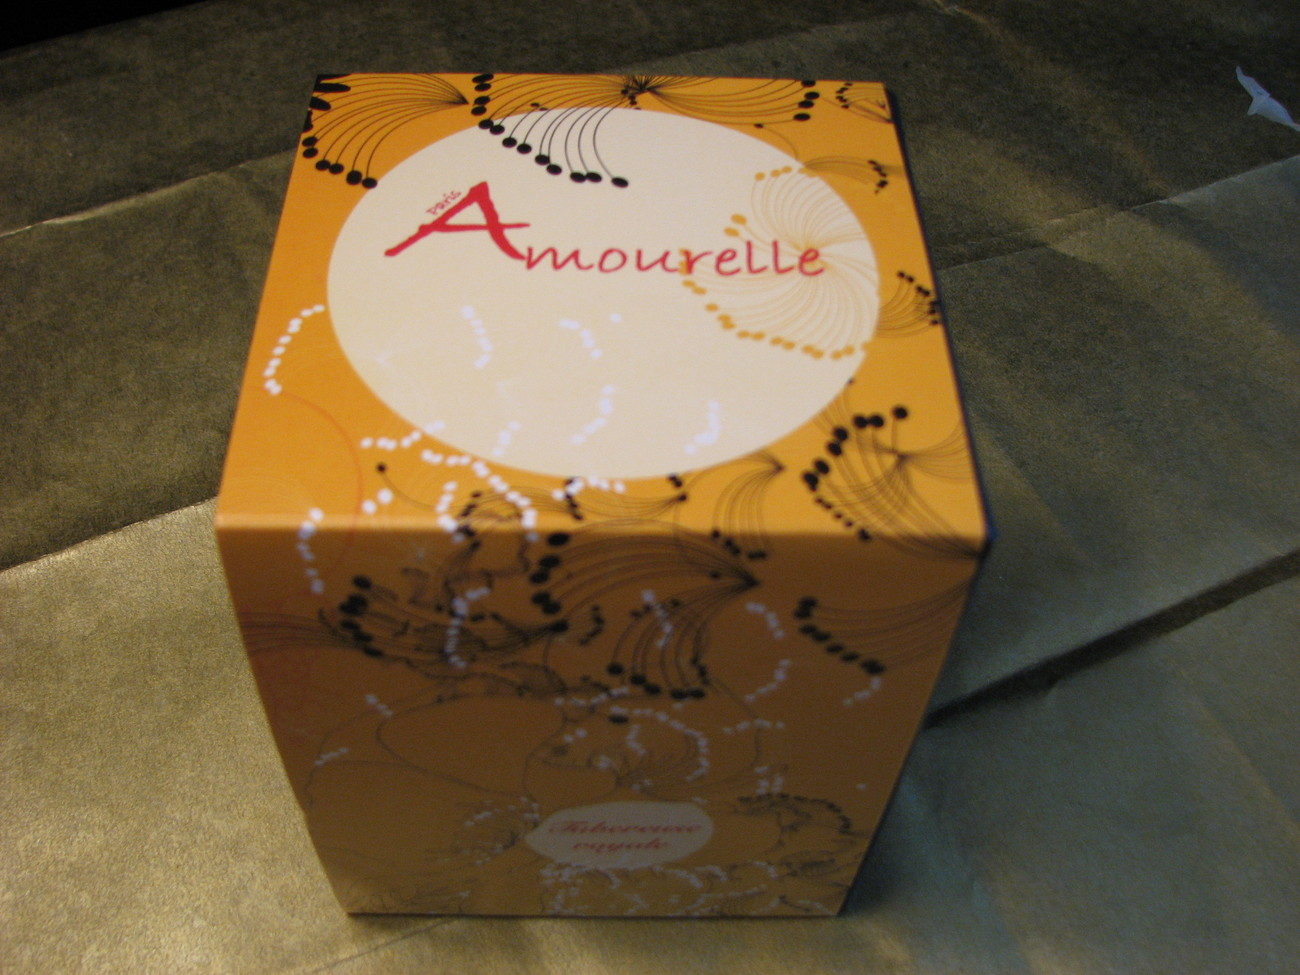 Amourelle Paris Royal Tuberose Candle 3.9 oz Wi, Mimosa Bakelite New